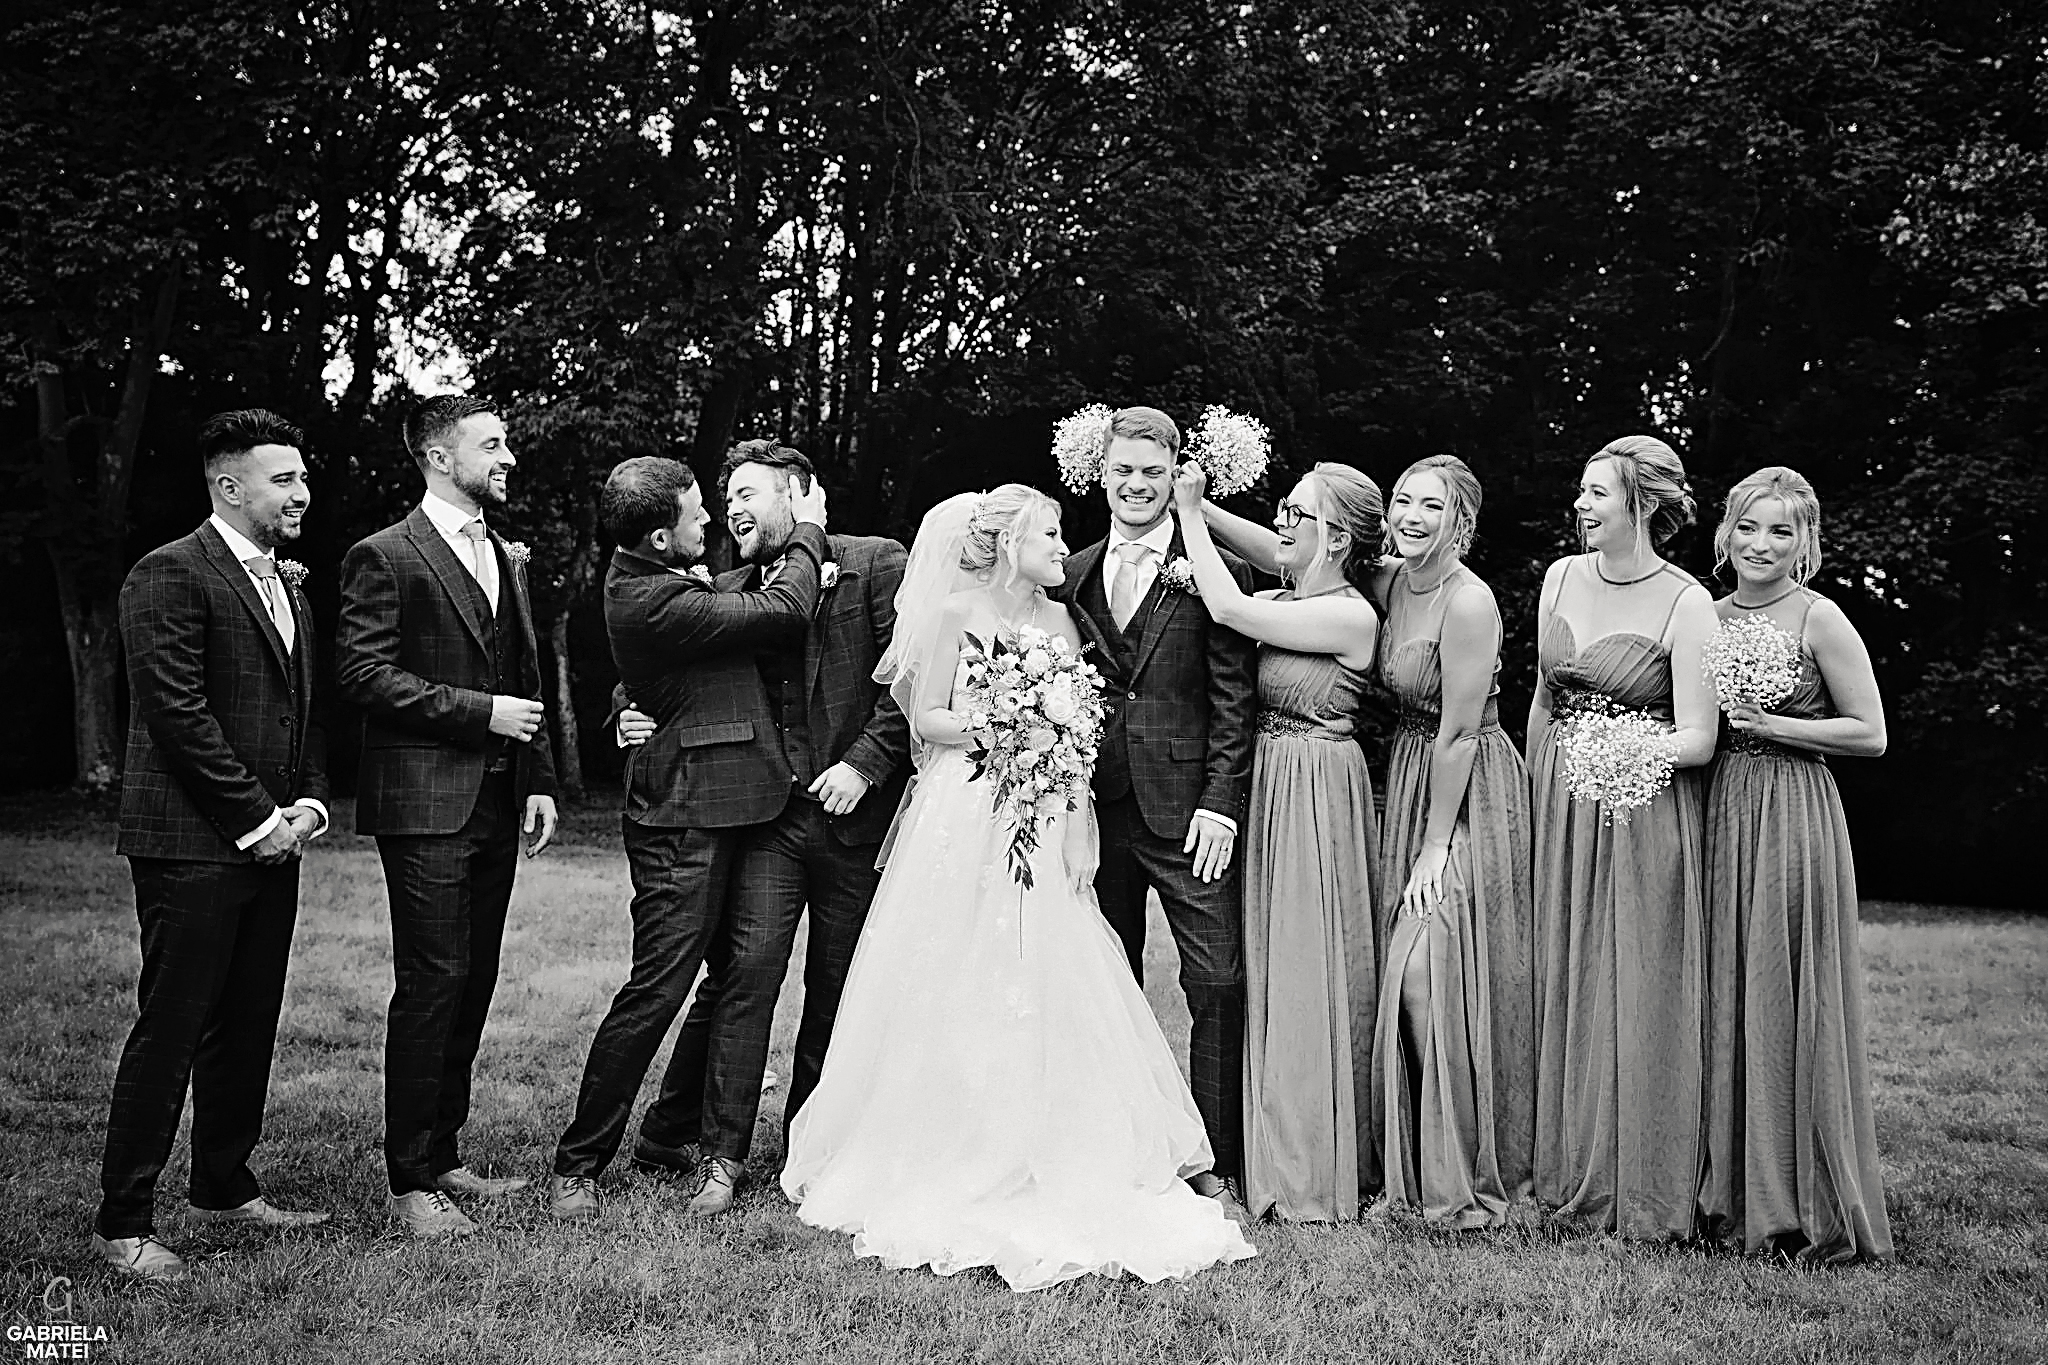 Bride and groom having fun with bridal party during group shots at wedding in London, outdoor group photos, fun photos